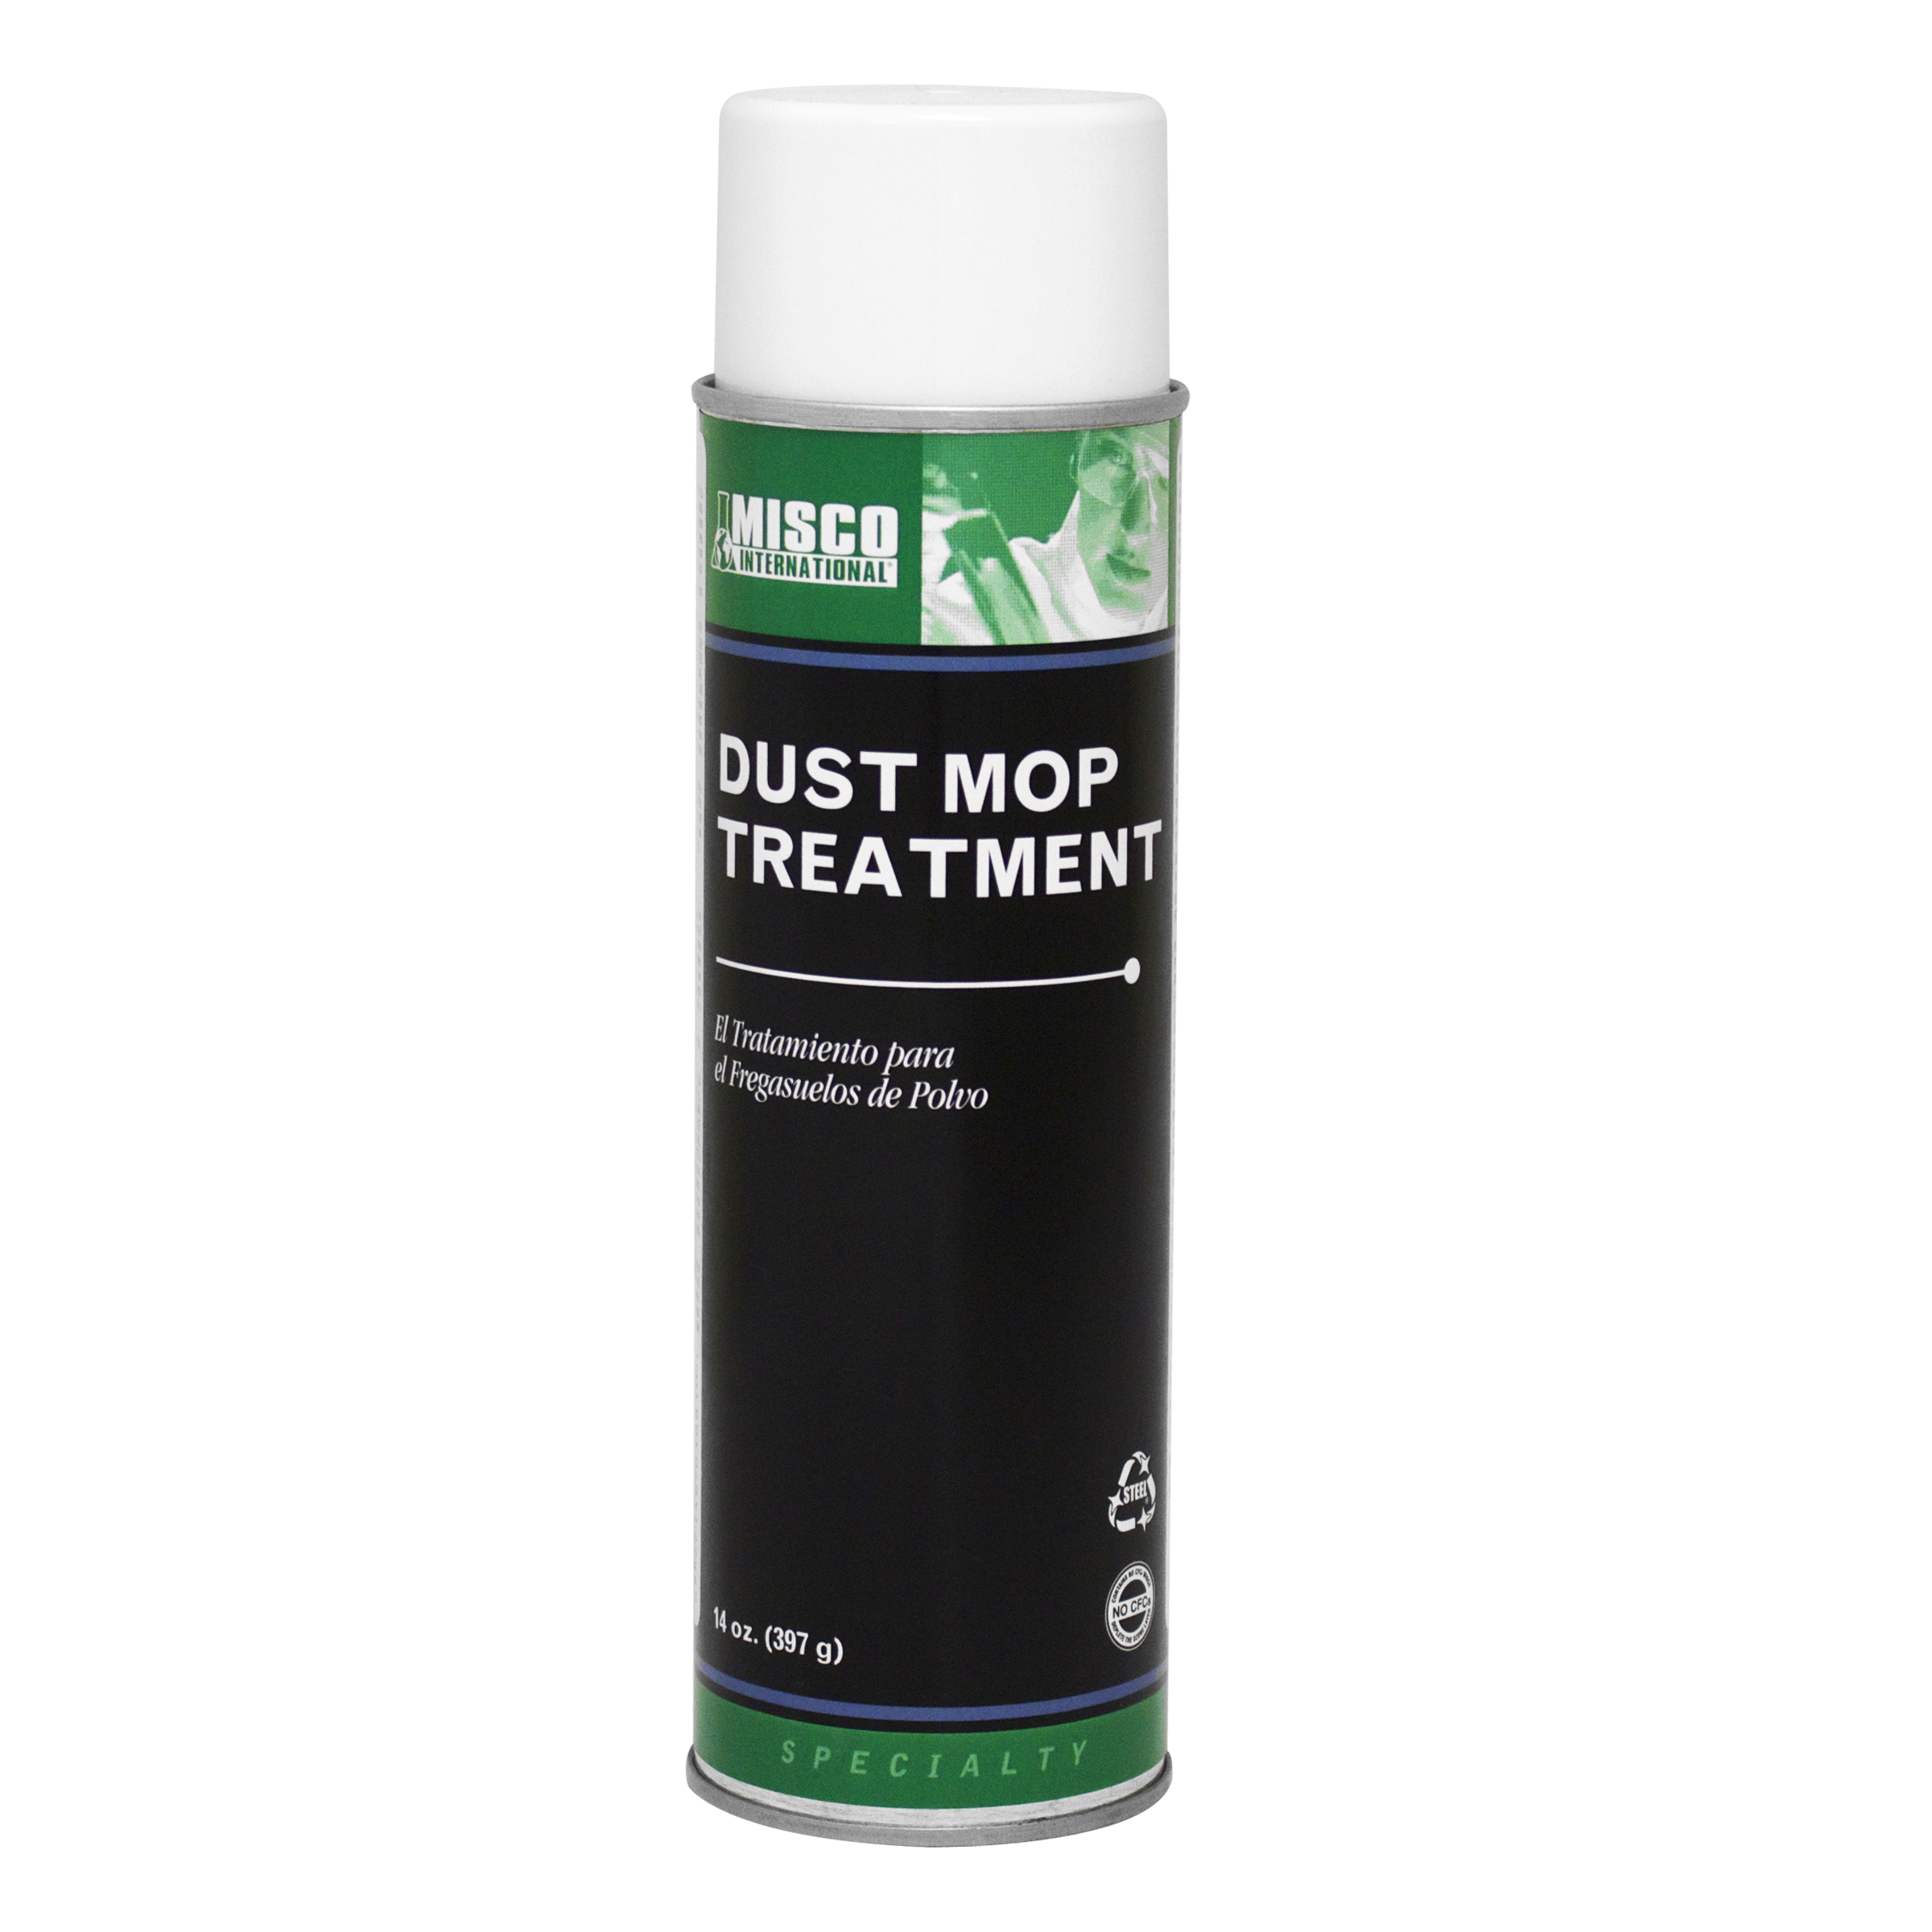 065352_DUST_MOP_TREATMENT